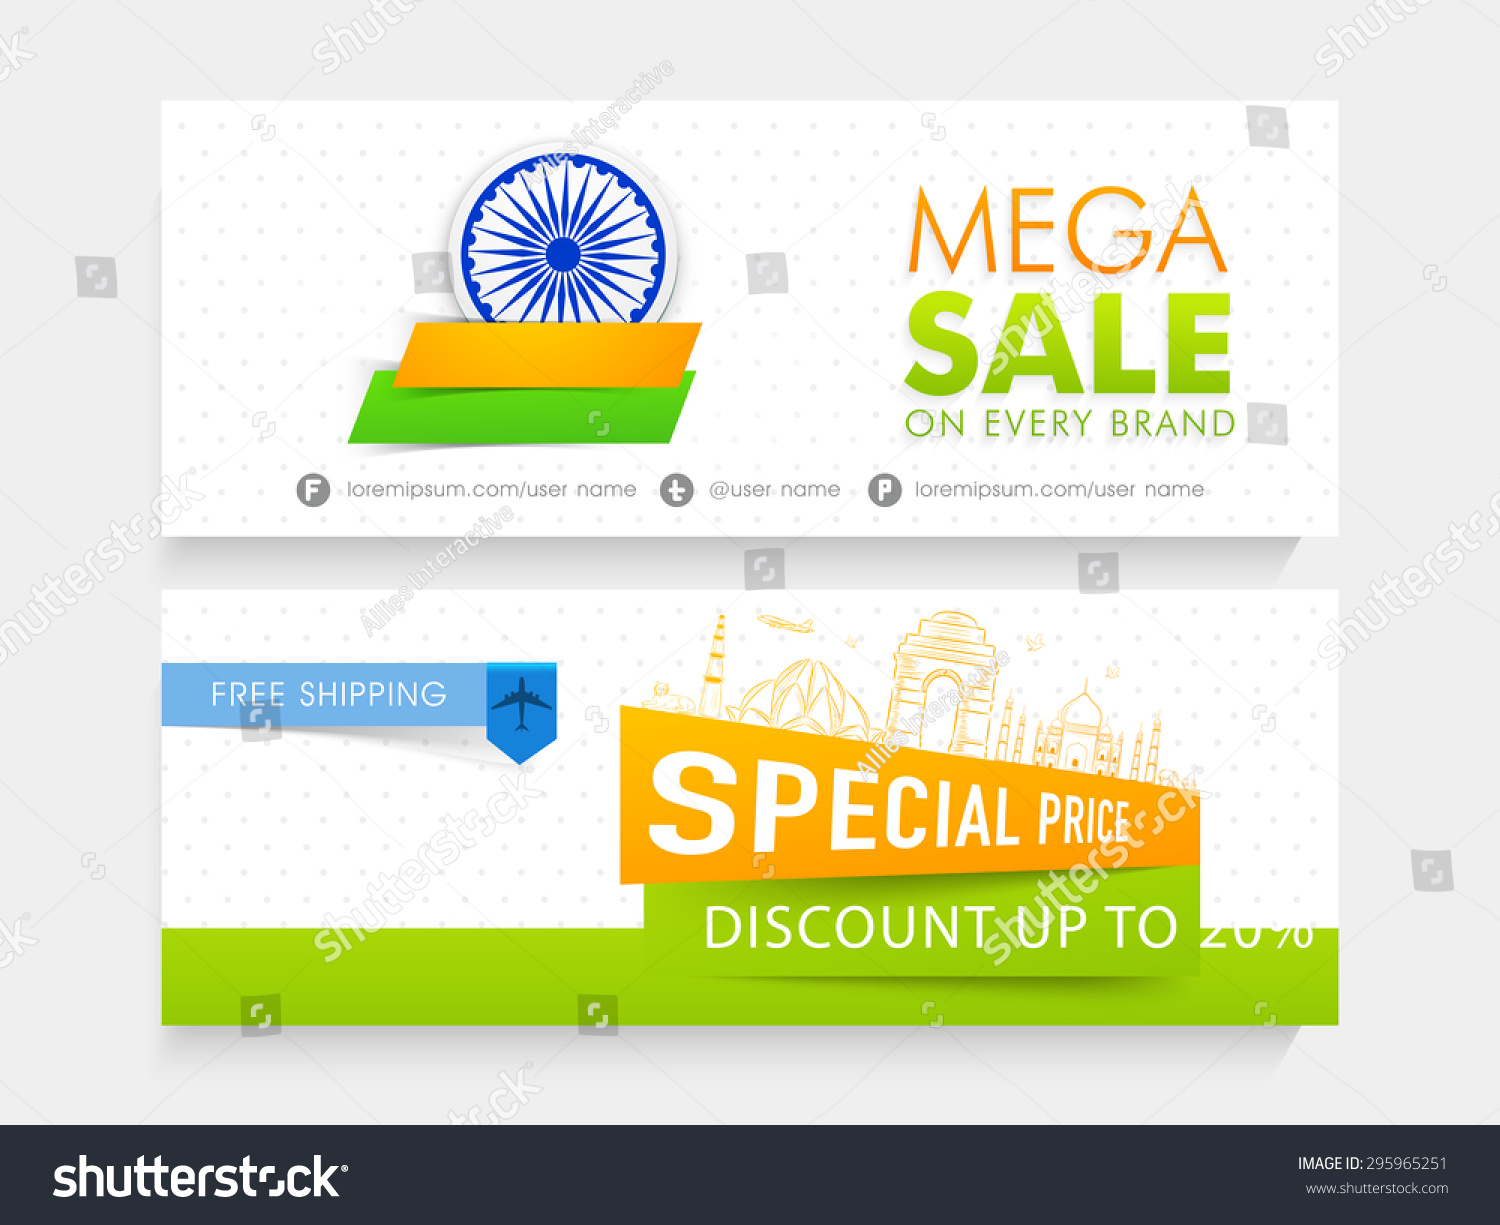 Colors website ashoka - Mega Sale With Special Discount Offer Website Header Or Banner Set Decorated With Shiny Ashoka